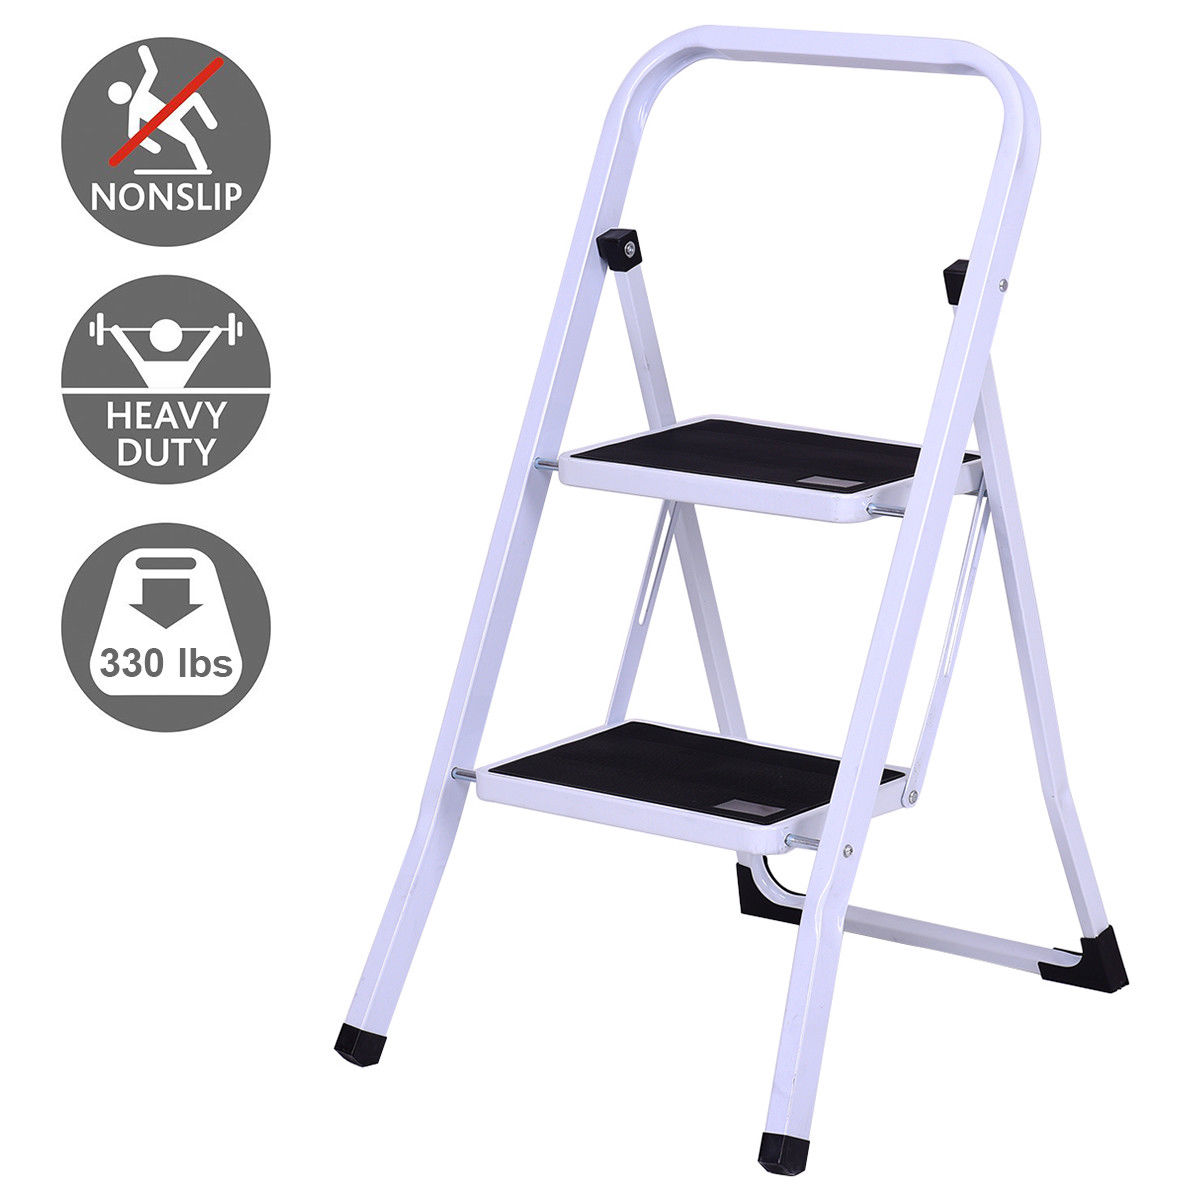 Gymax 2 Step Ladder Folding Steel Step Stool Anti-slip Heavy Duty with 330Lbs Capacity by Gymax